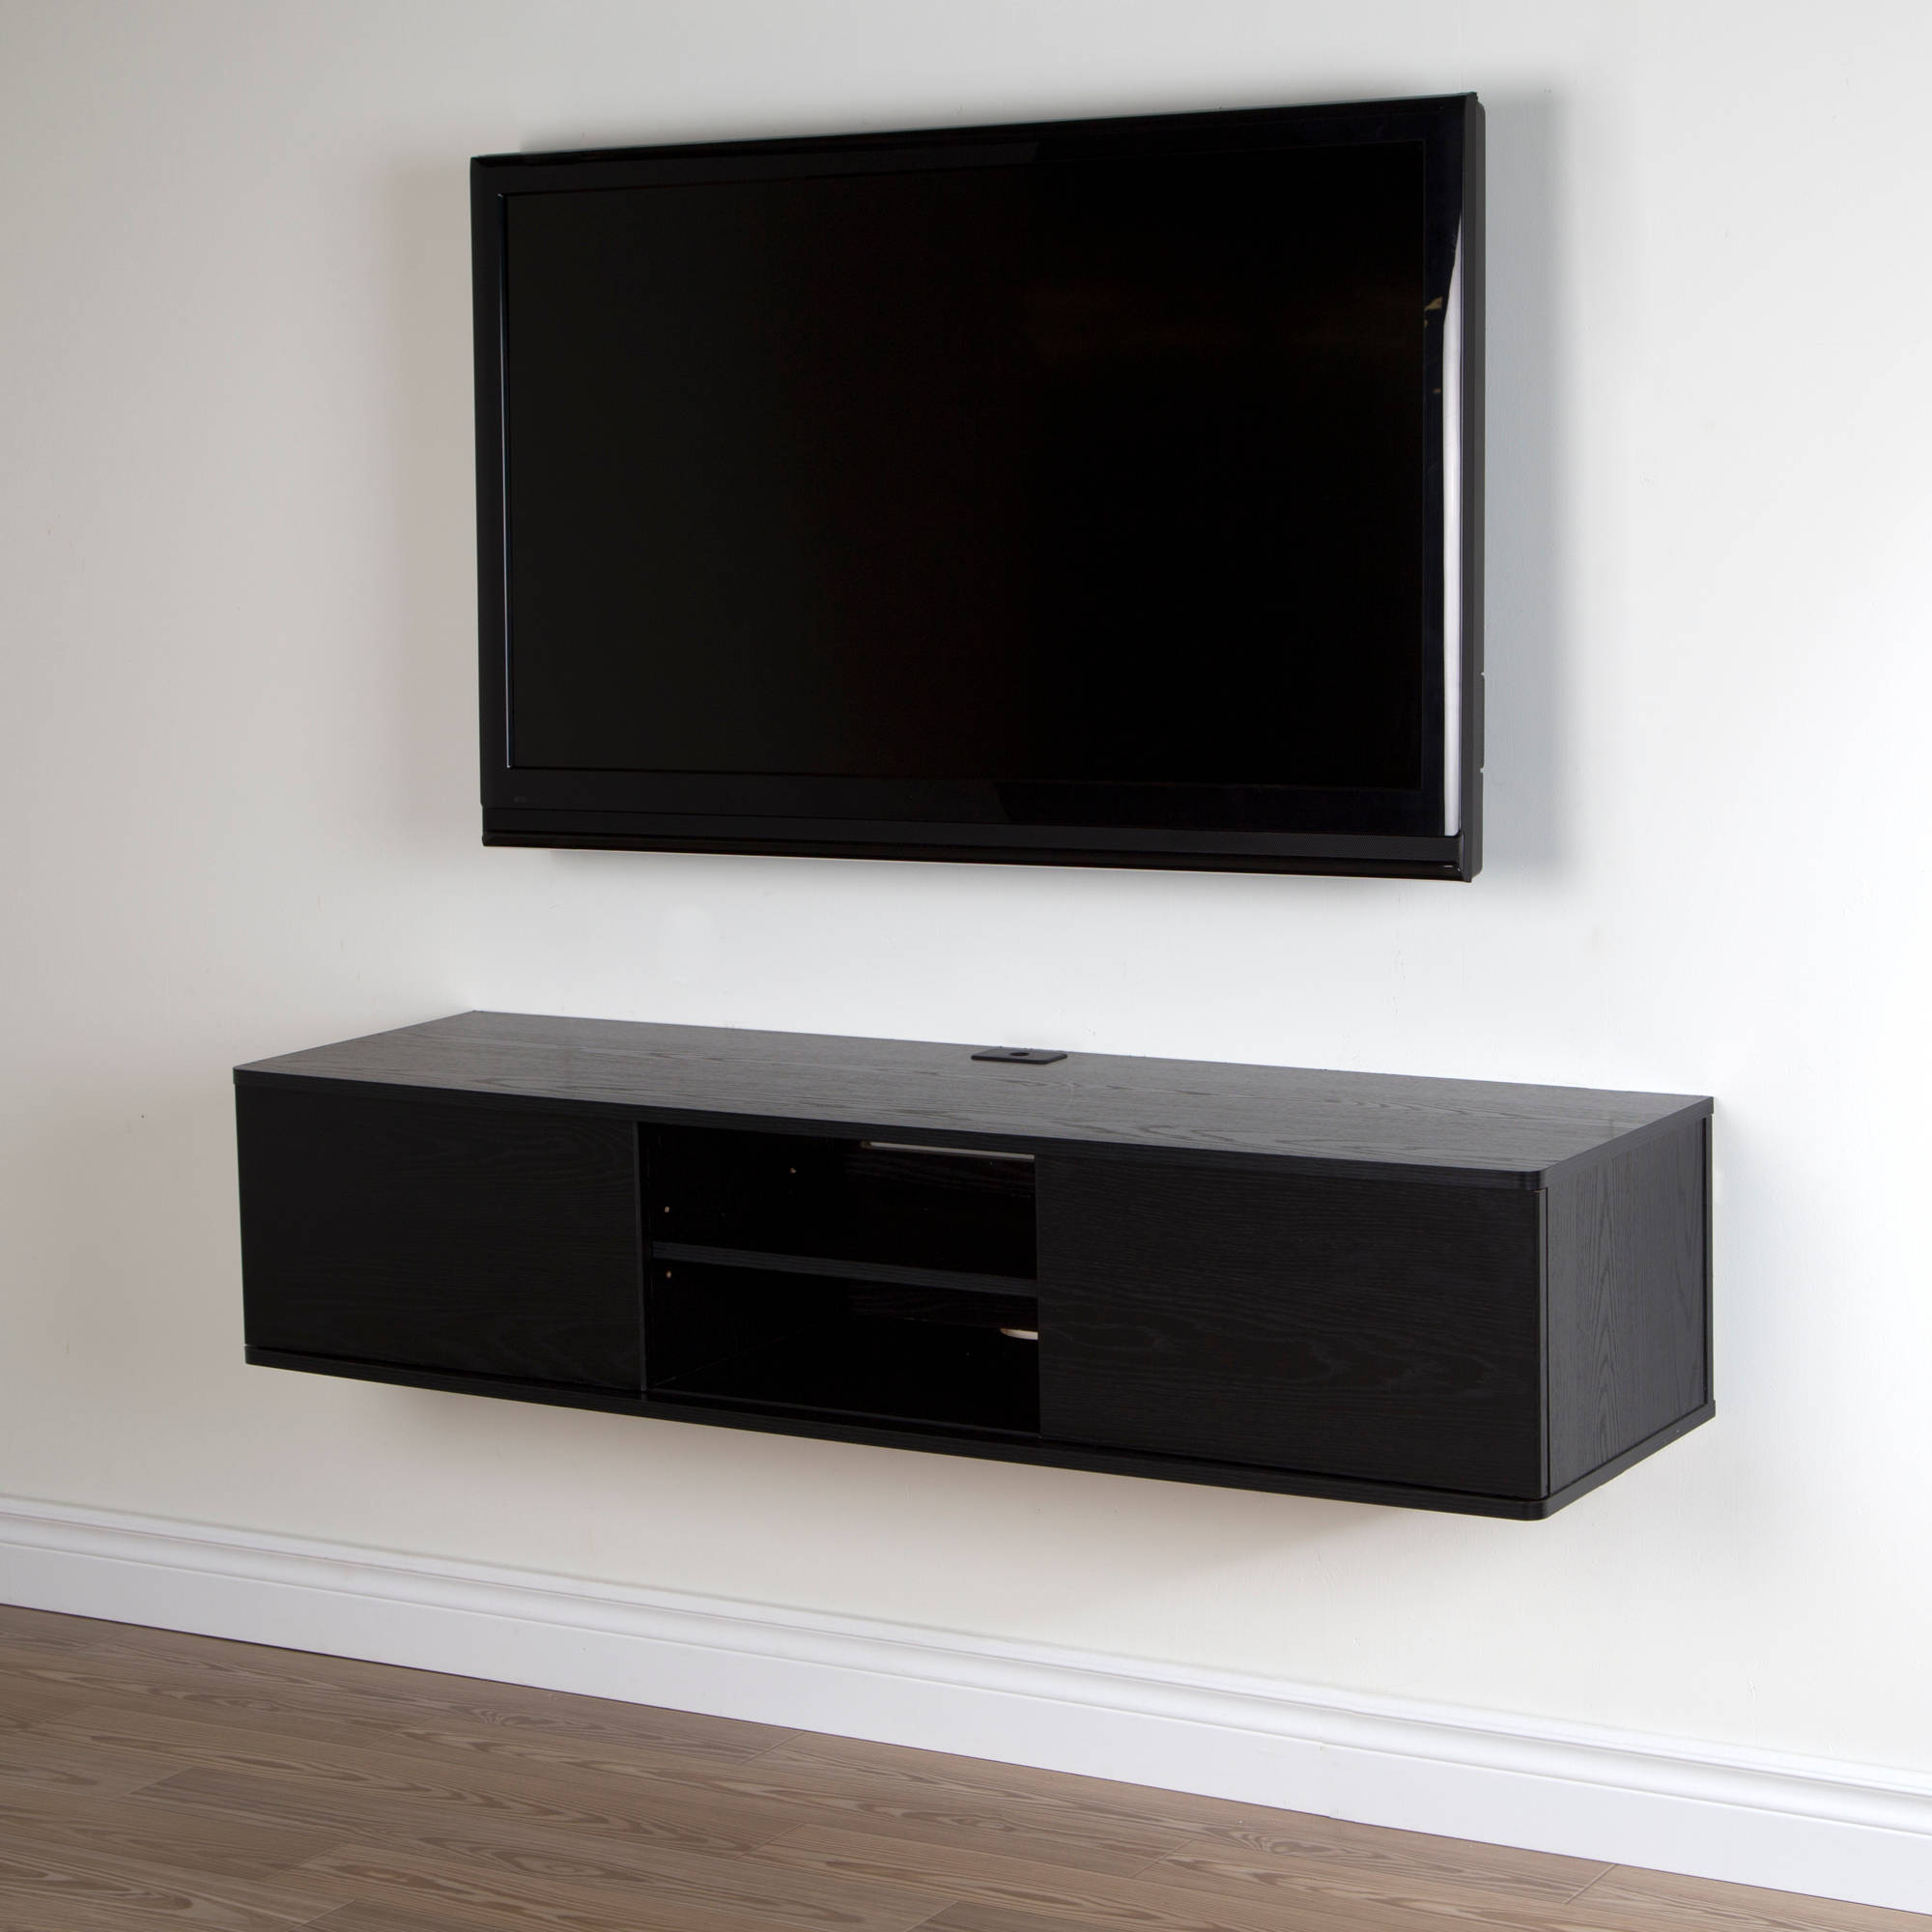 Wall Mount Tv Console Wall Mounted Floating Tv Stands